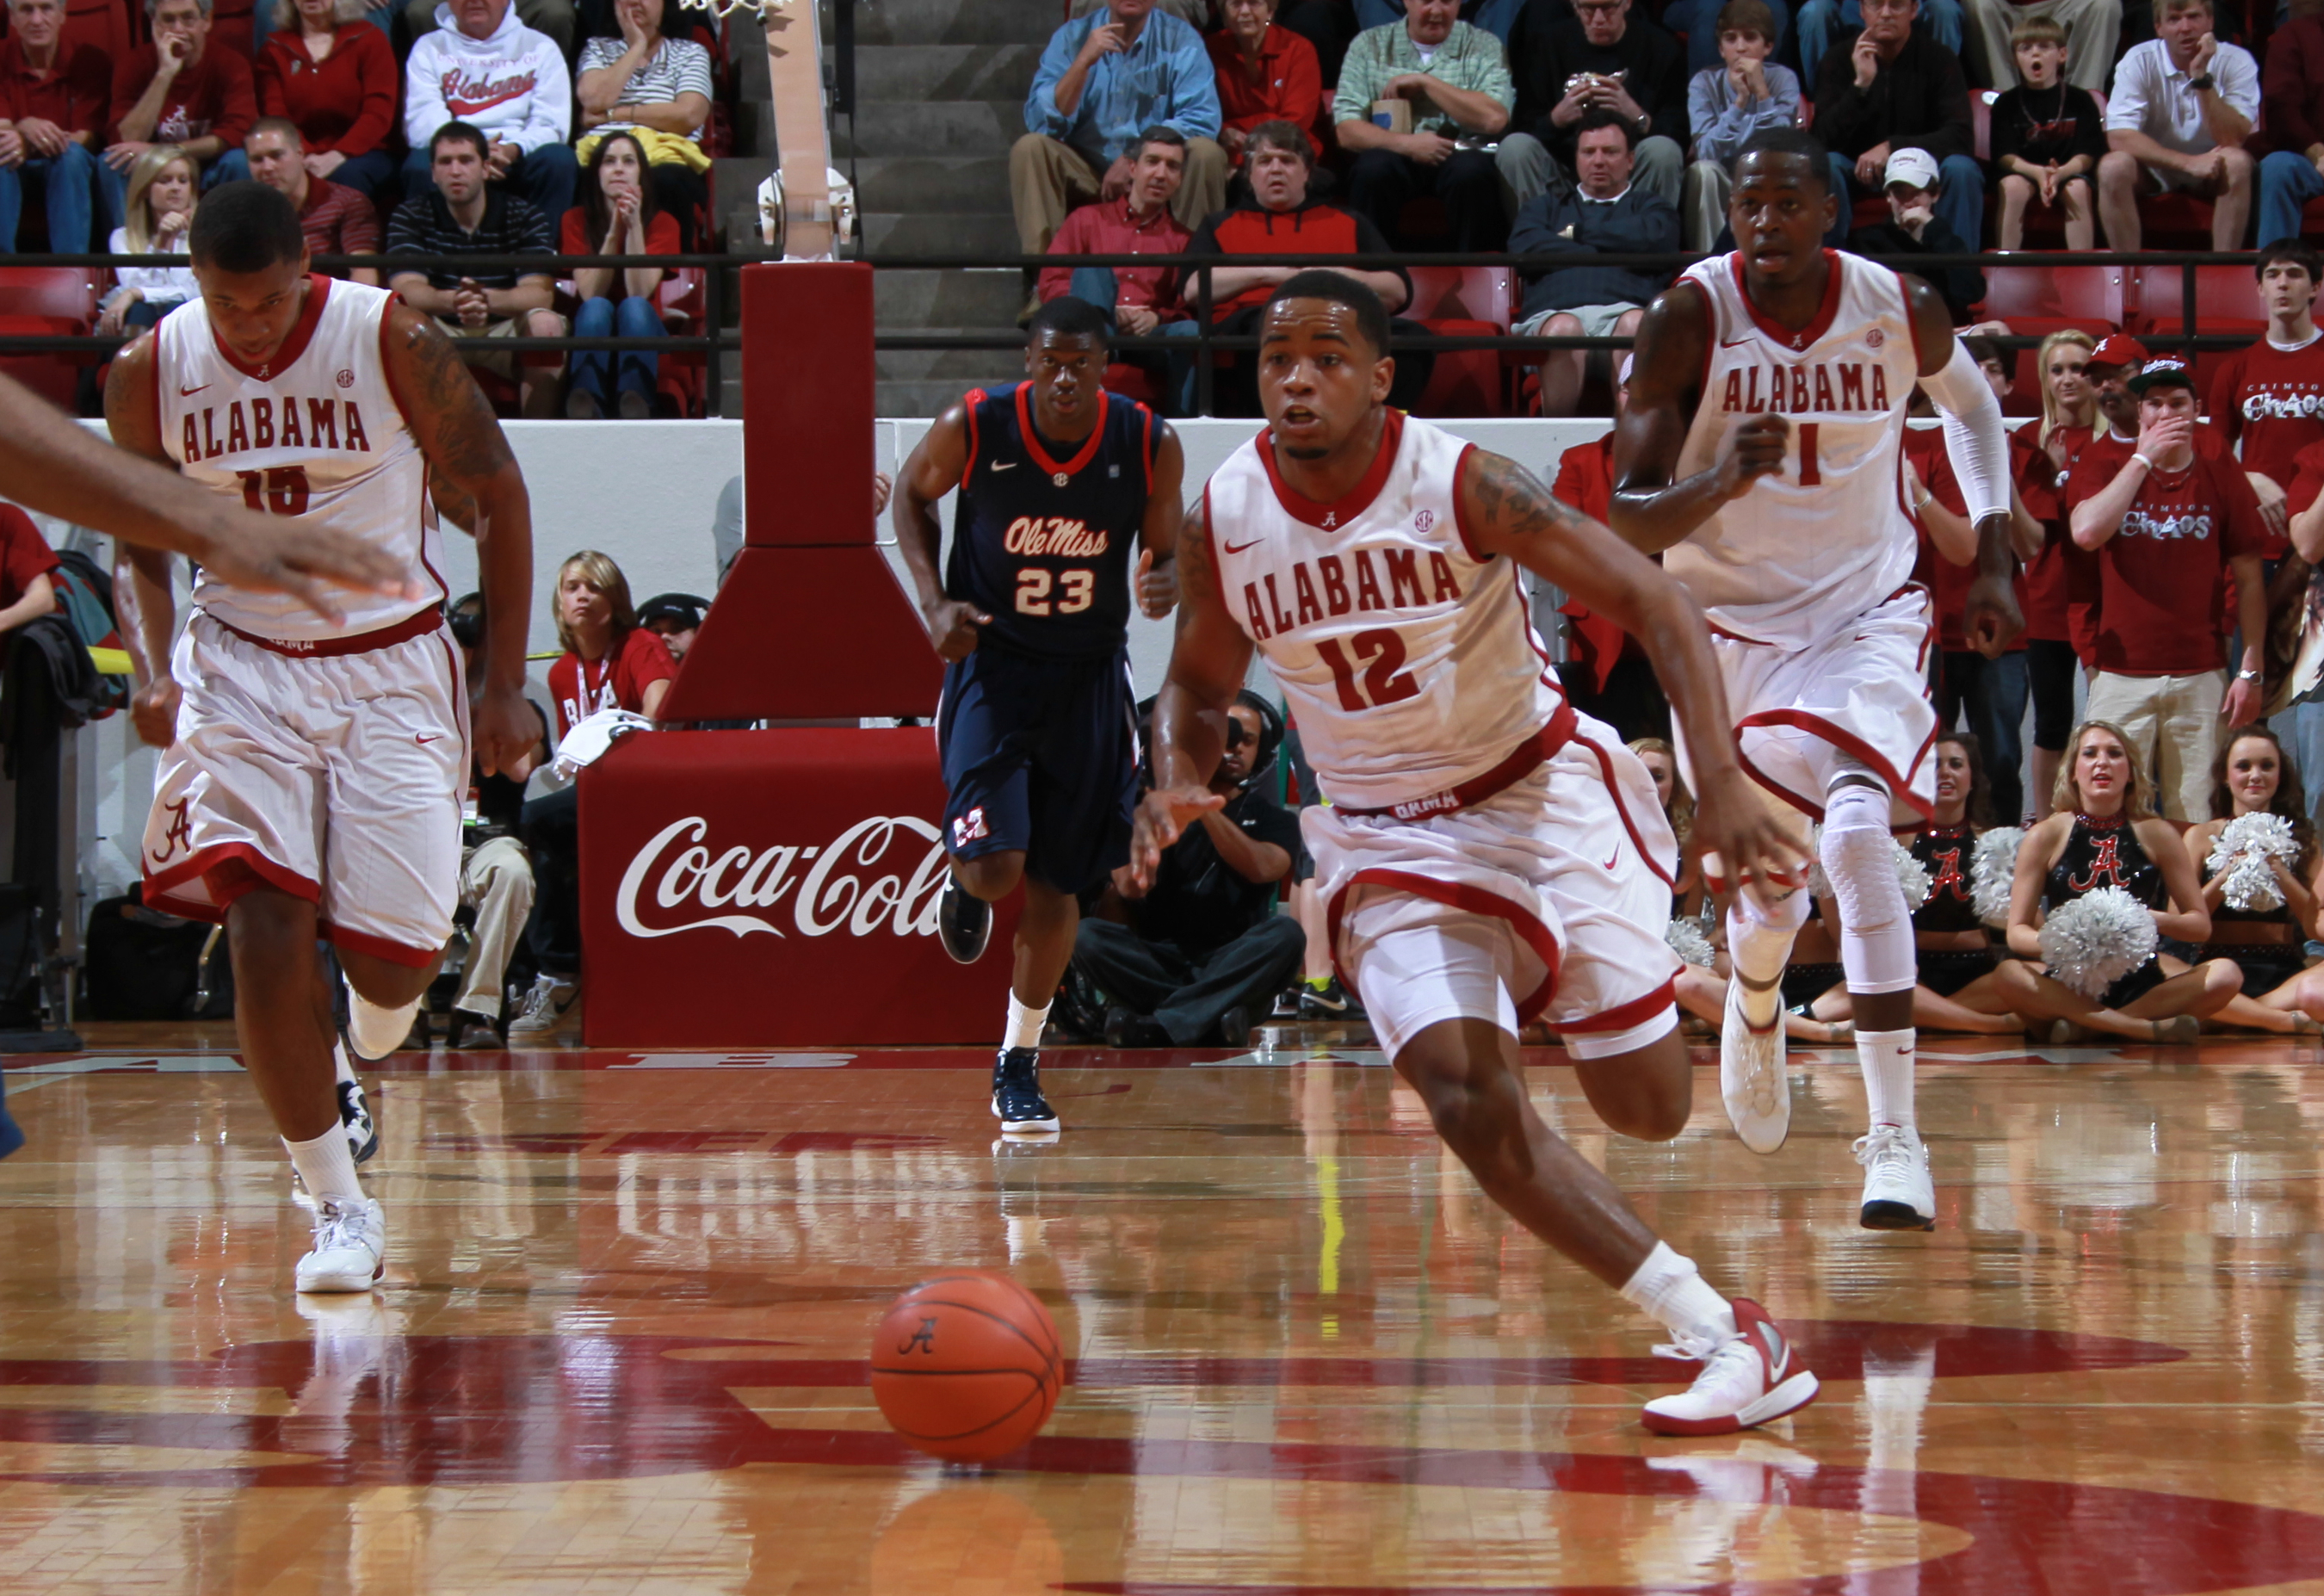 Bama Basketball Takes Down Ole Miss in Double Overtime